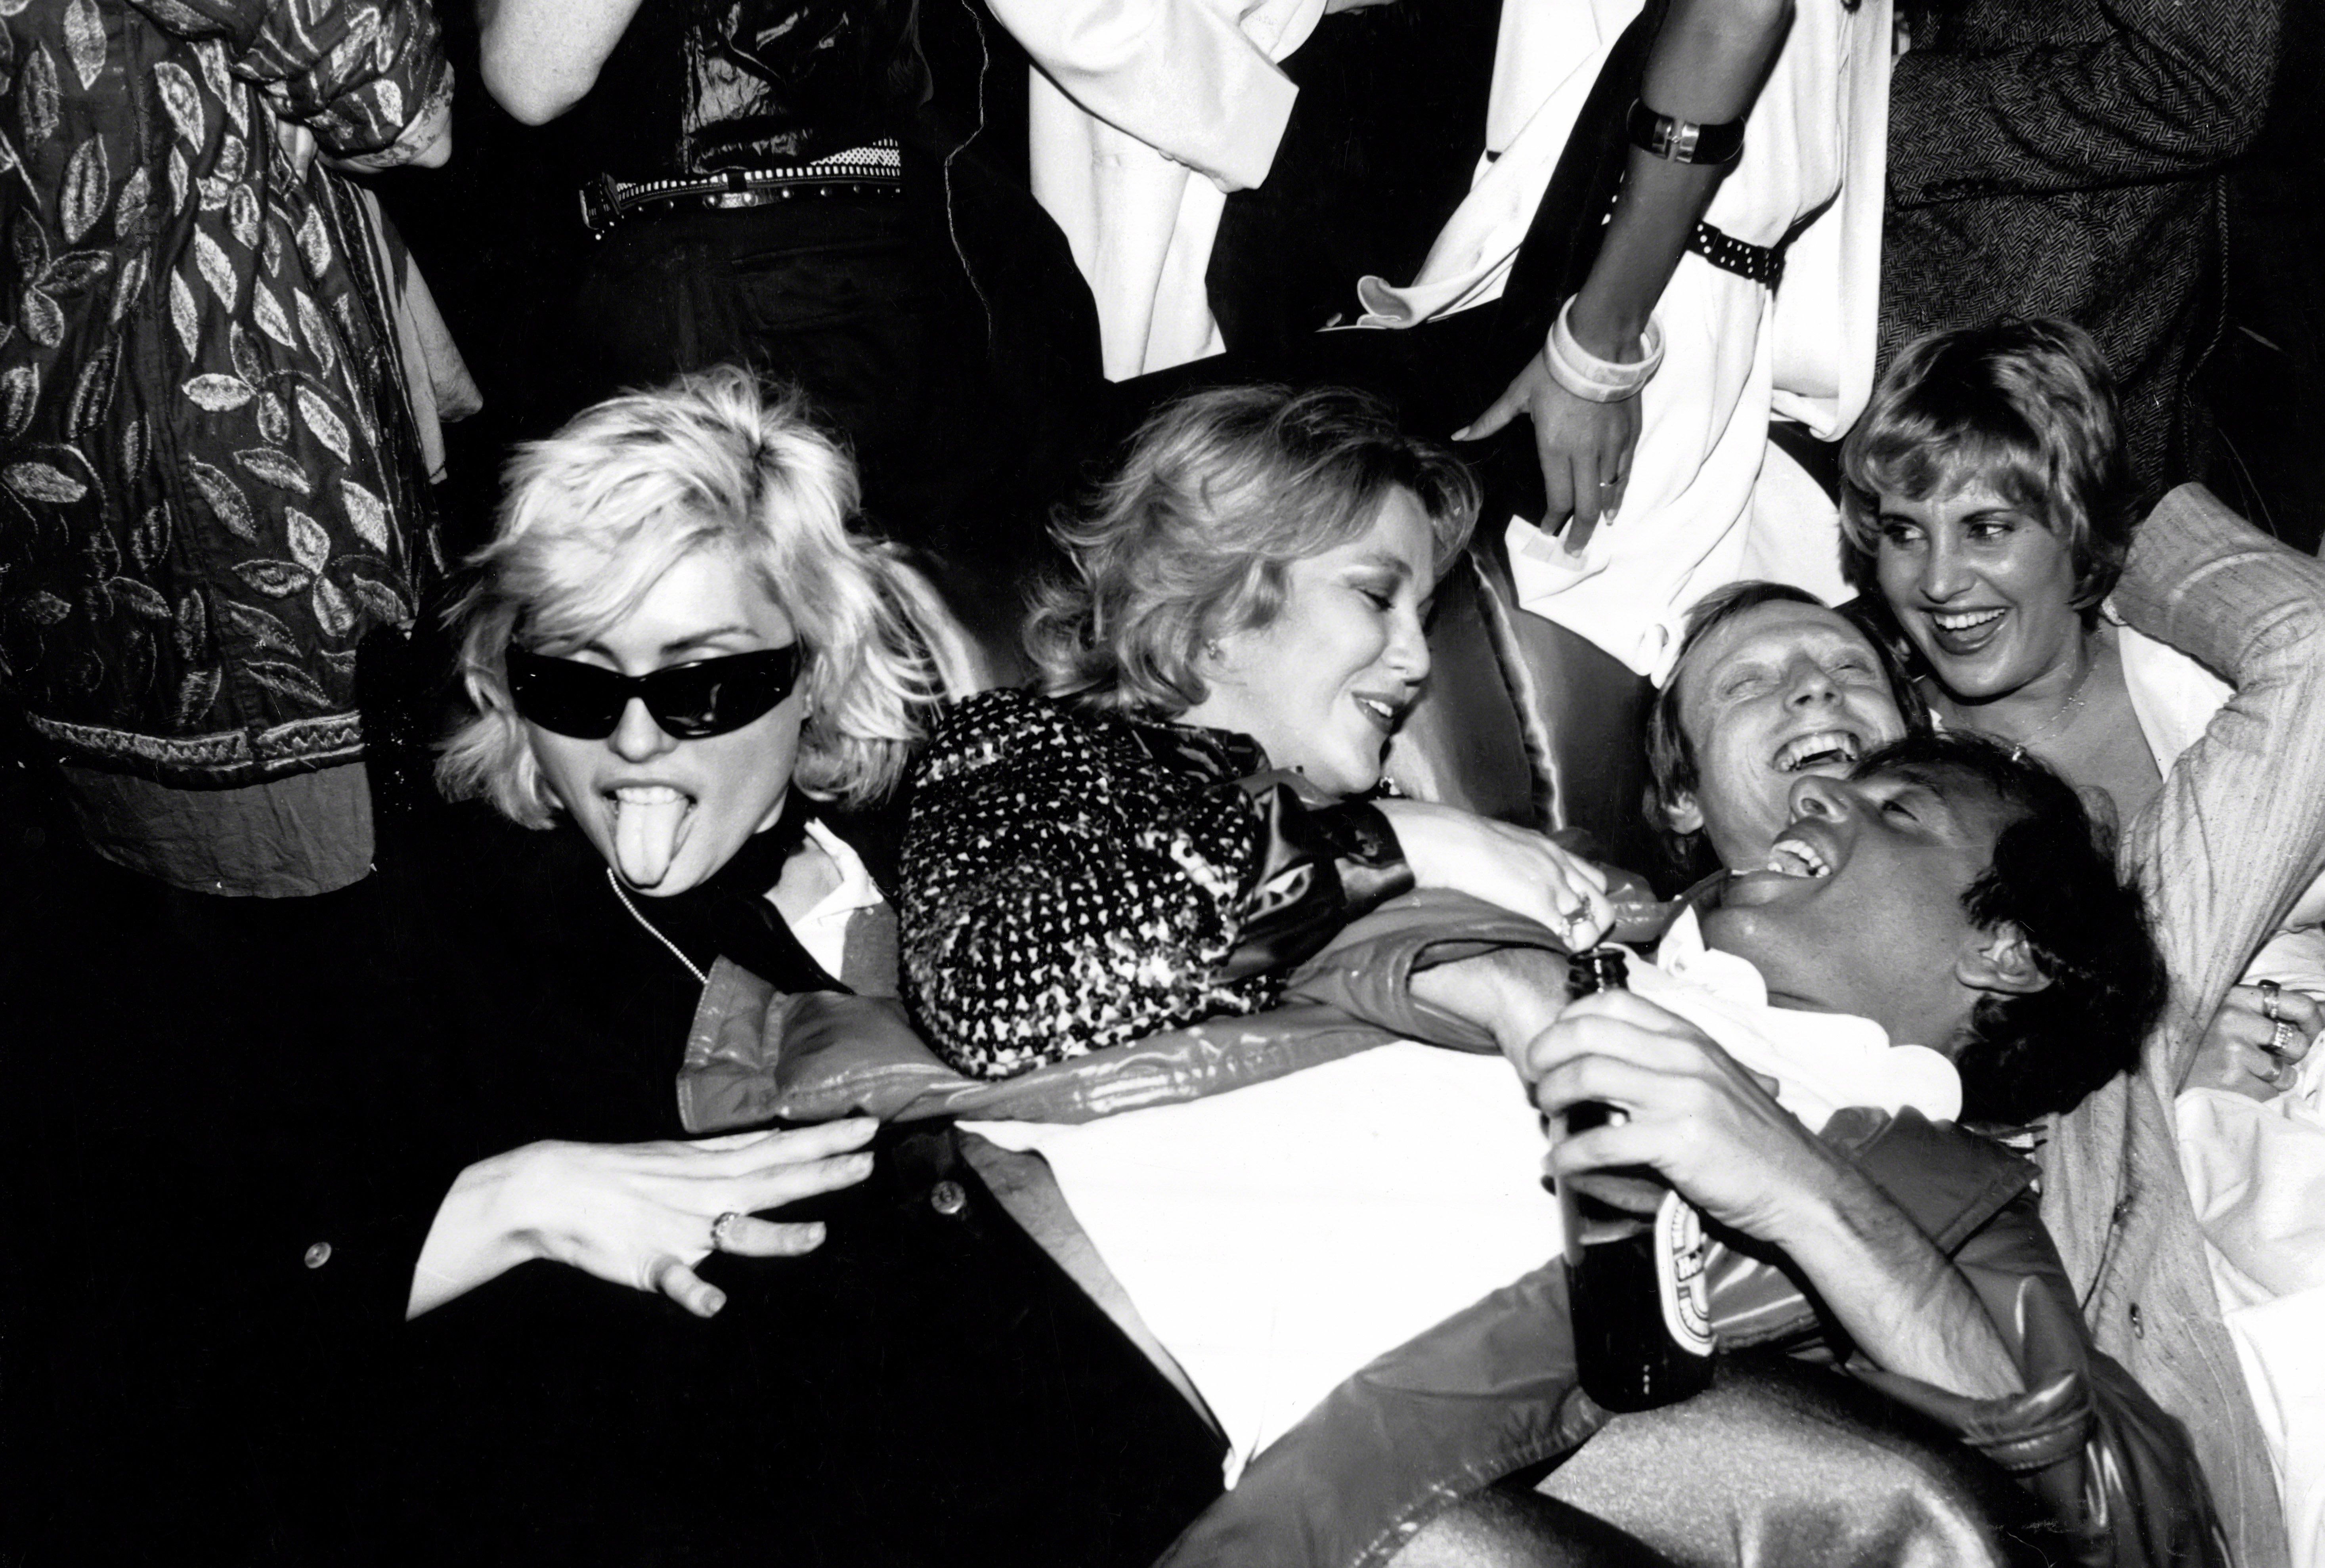 Debbie Harry Opens Up About Studio 54 and Being Andy Warhol's Muse